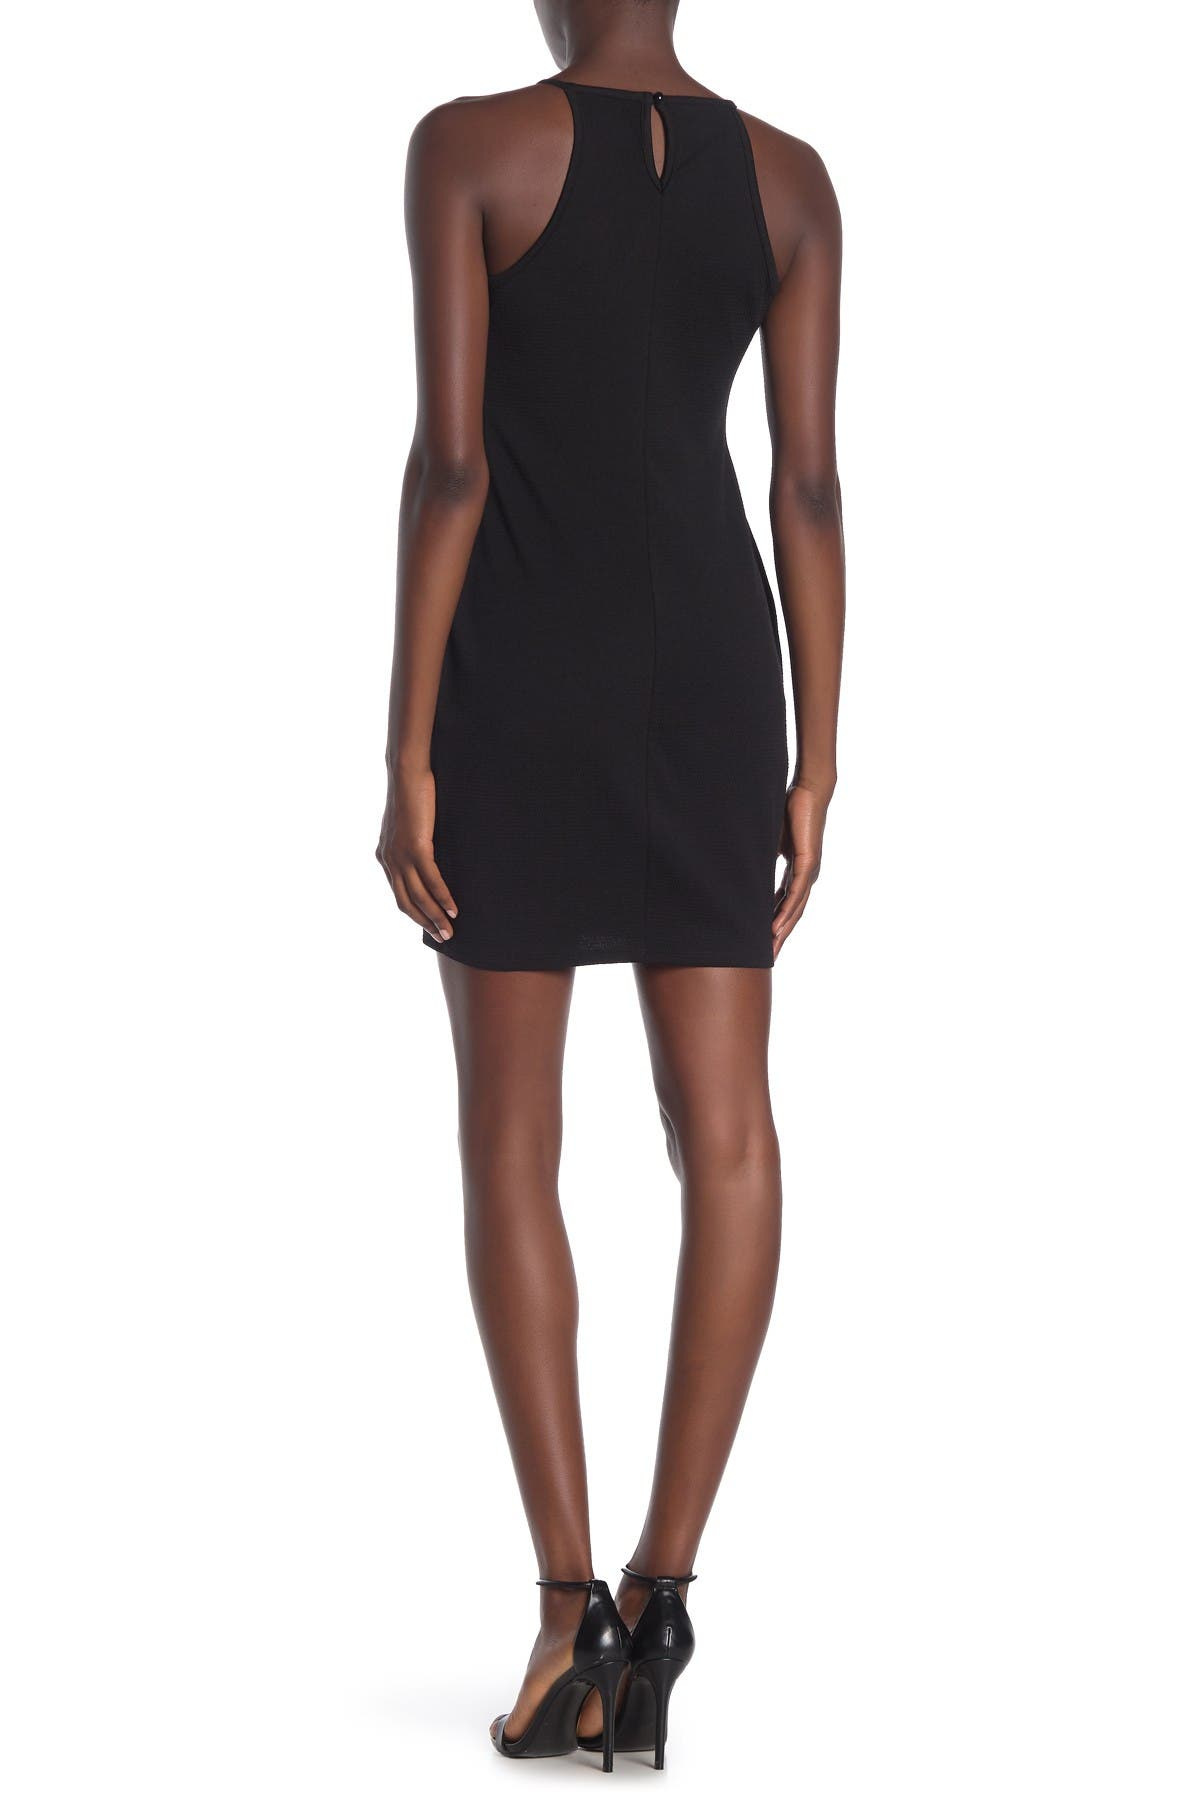 Image of MATERIAL GIRL Halter Neck Bodycon Dress